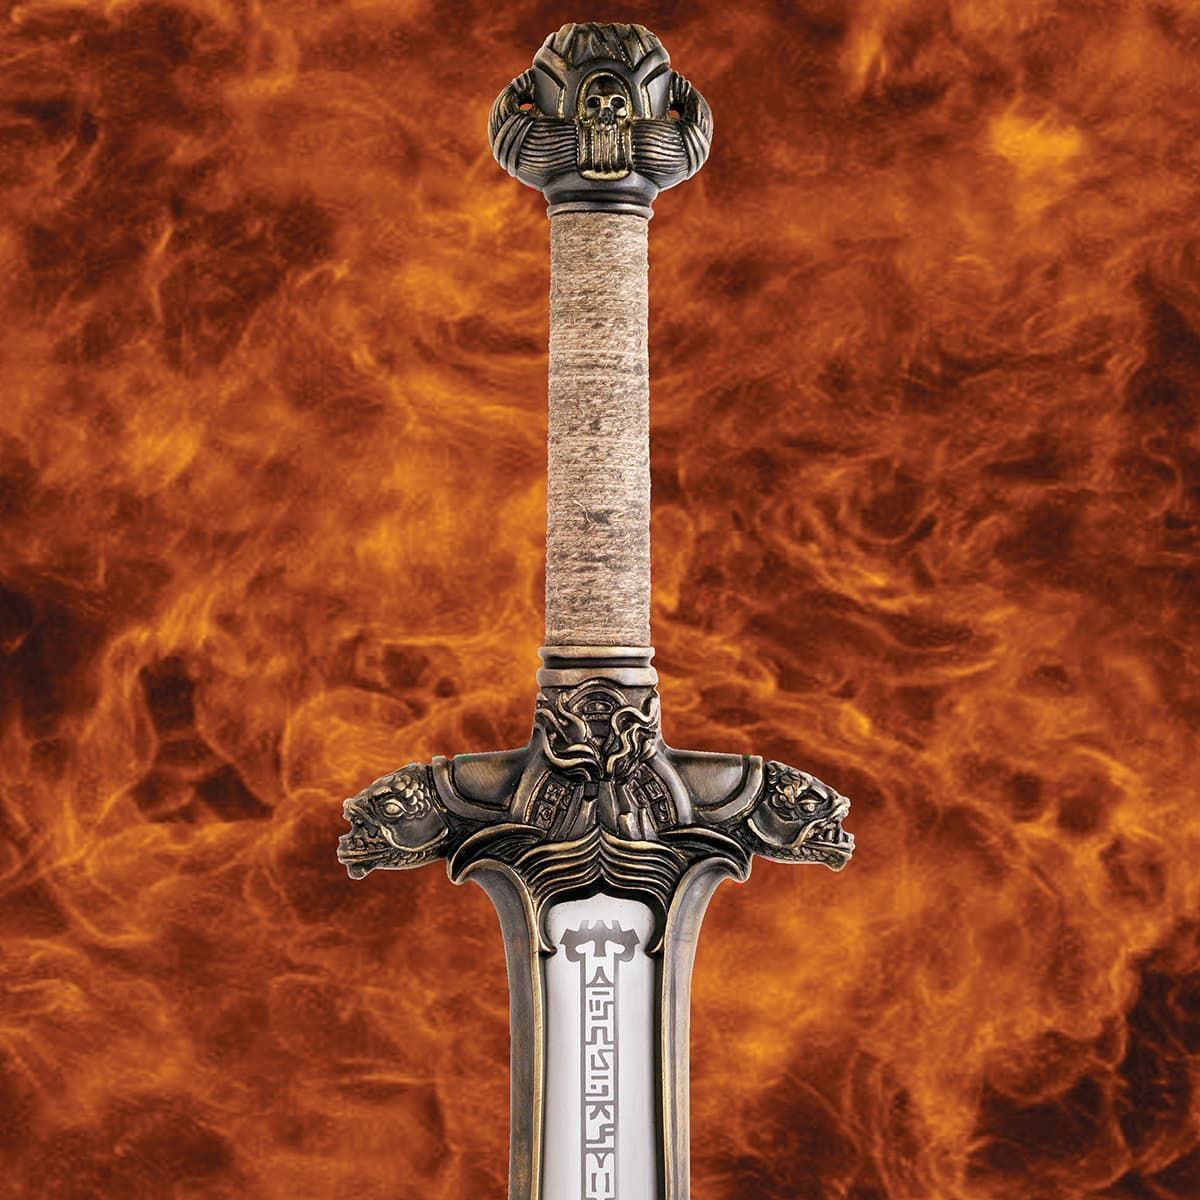 The Atlantean Sword from Conan the Barbarian